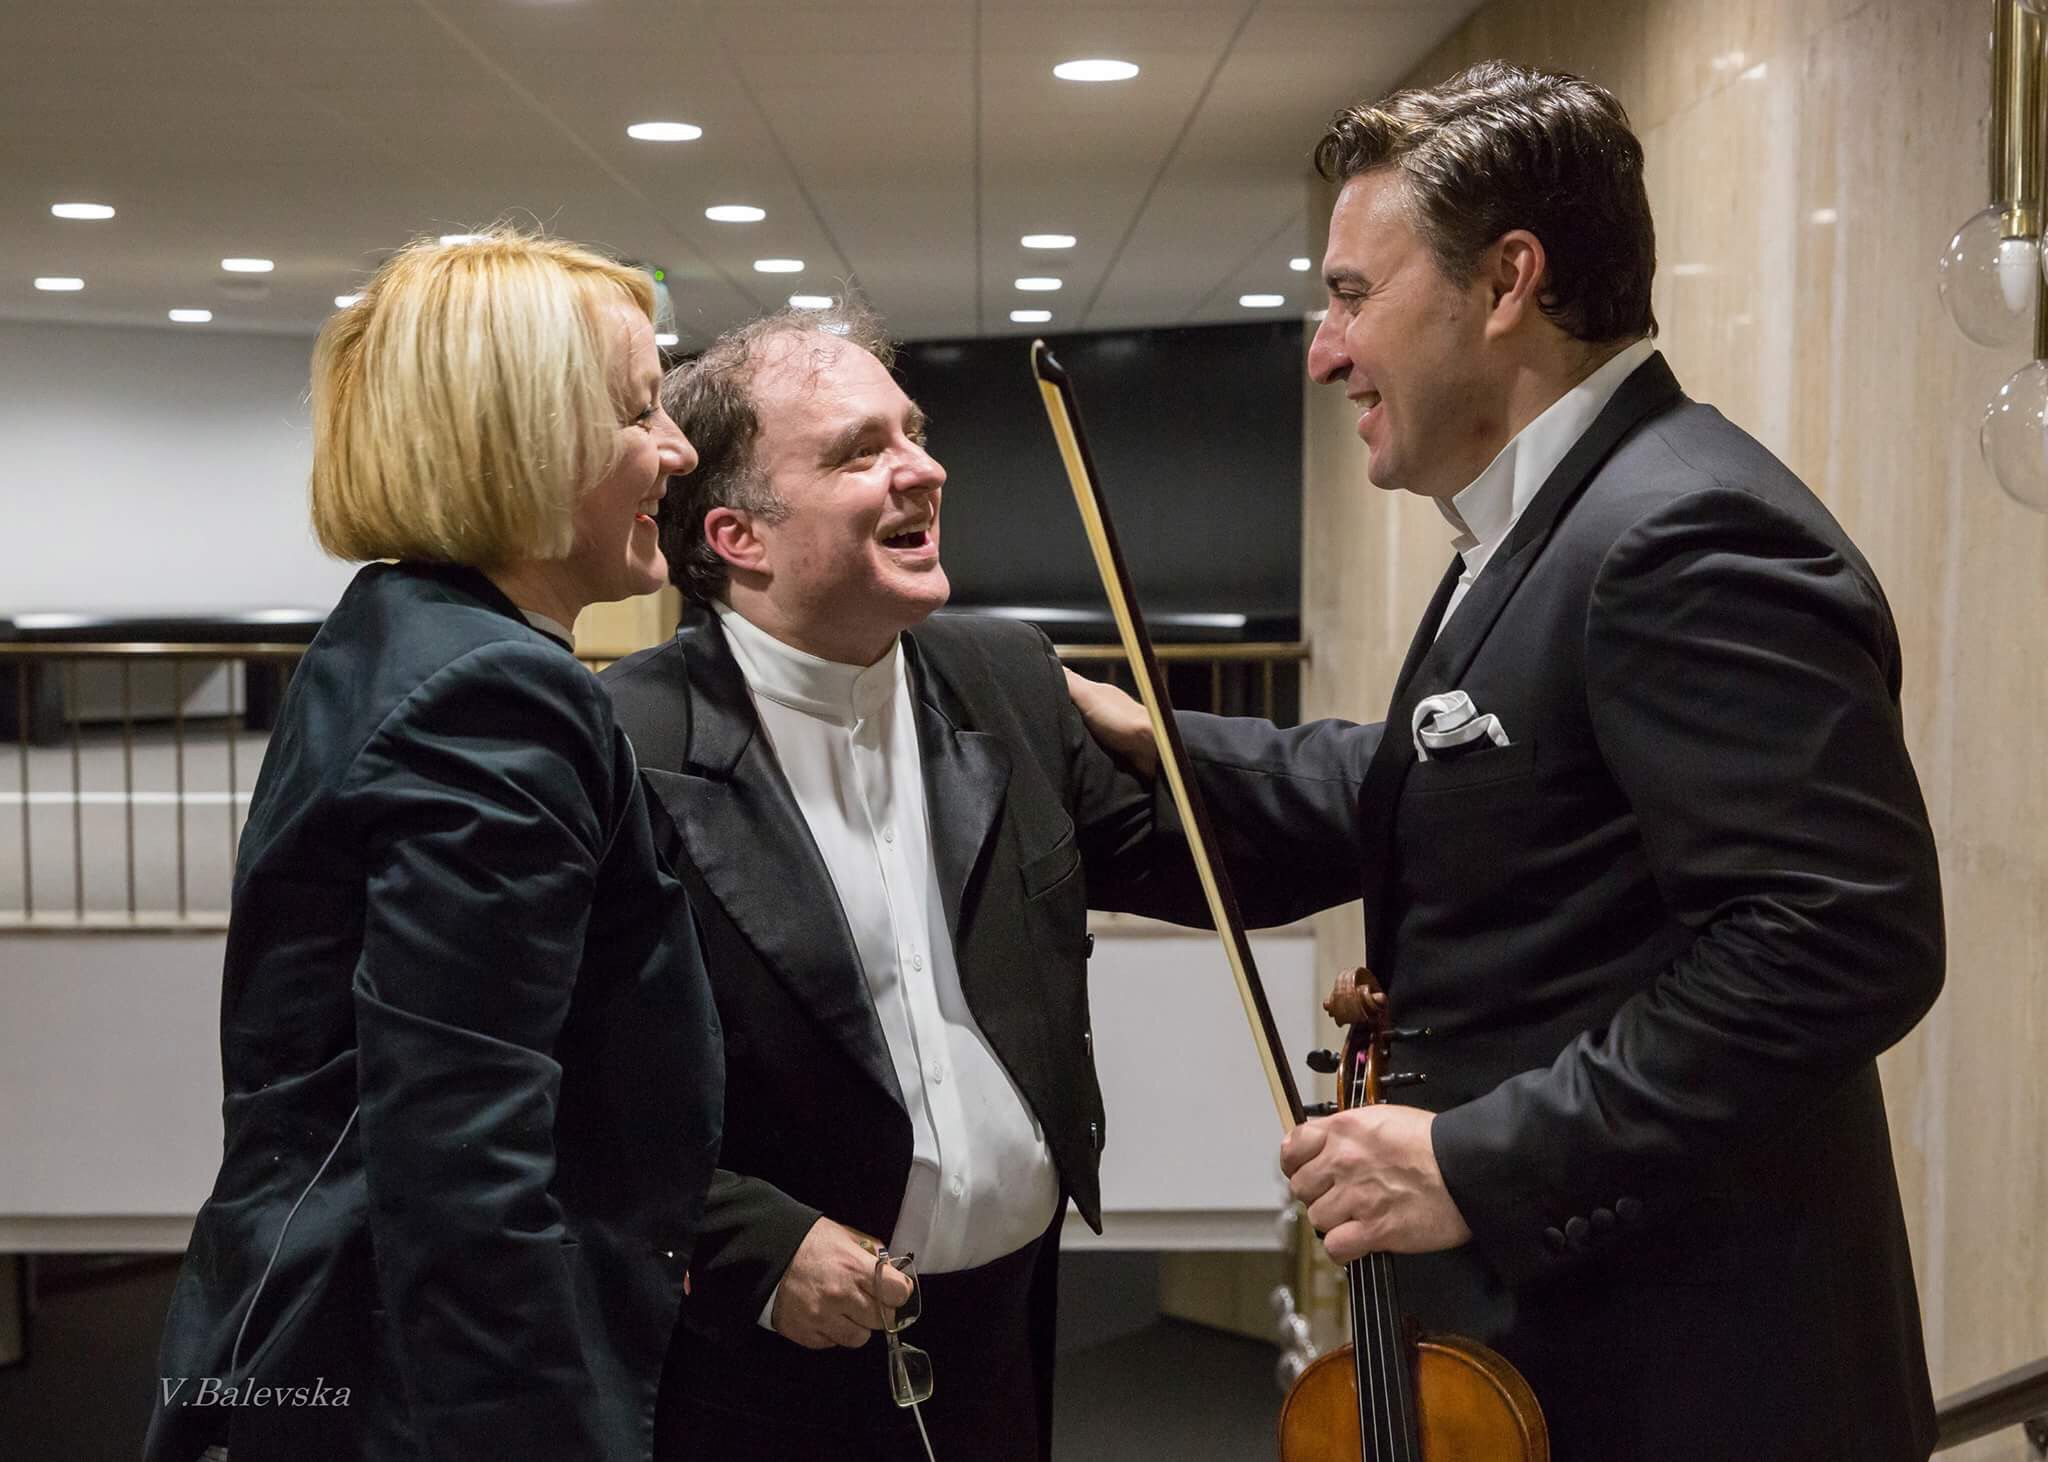 After a wonderful concert with Maxim Vengerov.